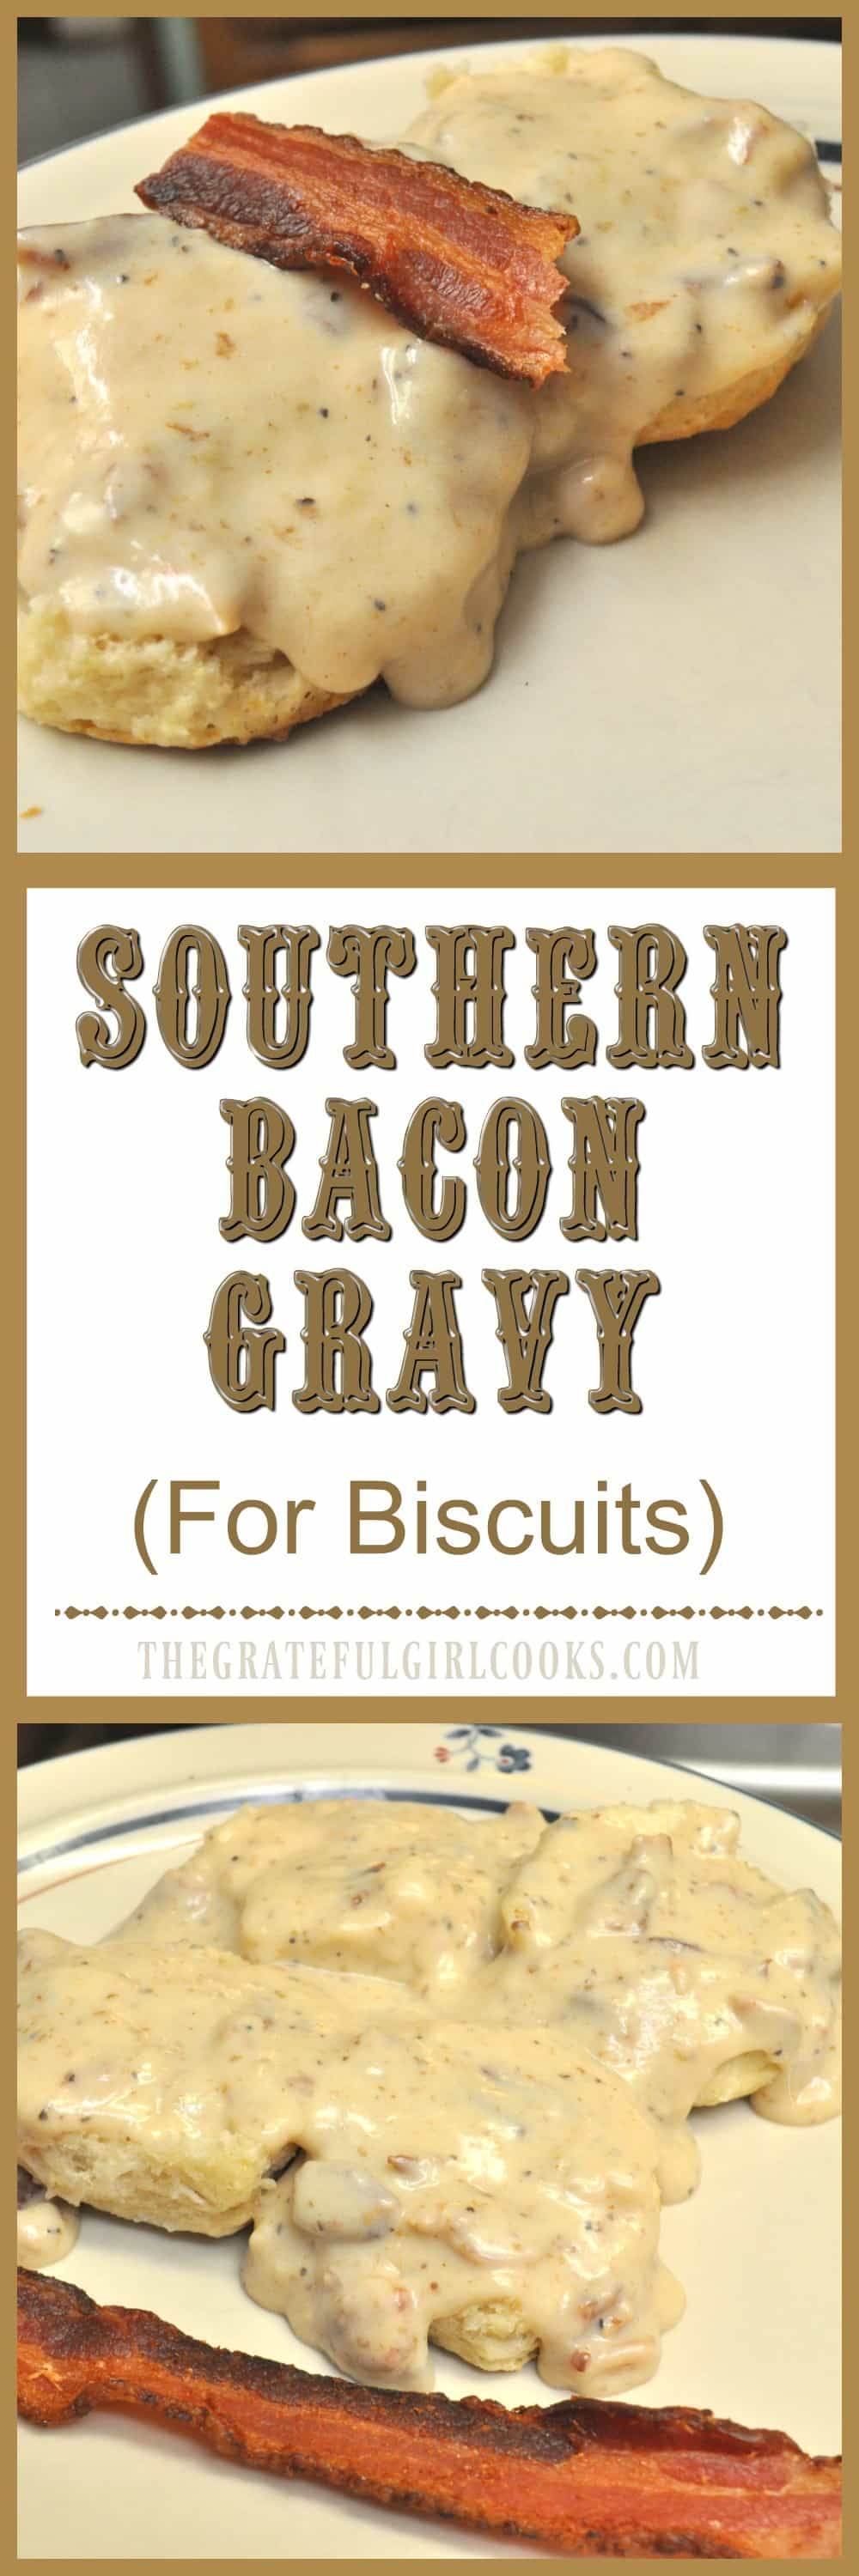 Southern Bacon Gravy (For Biscuits) / The Grateful Girl Cooks! Easy tutorial showing you how to make delicious gravy for Biscuits n' Gravy!